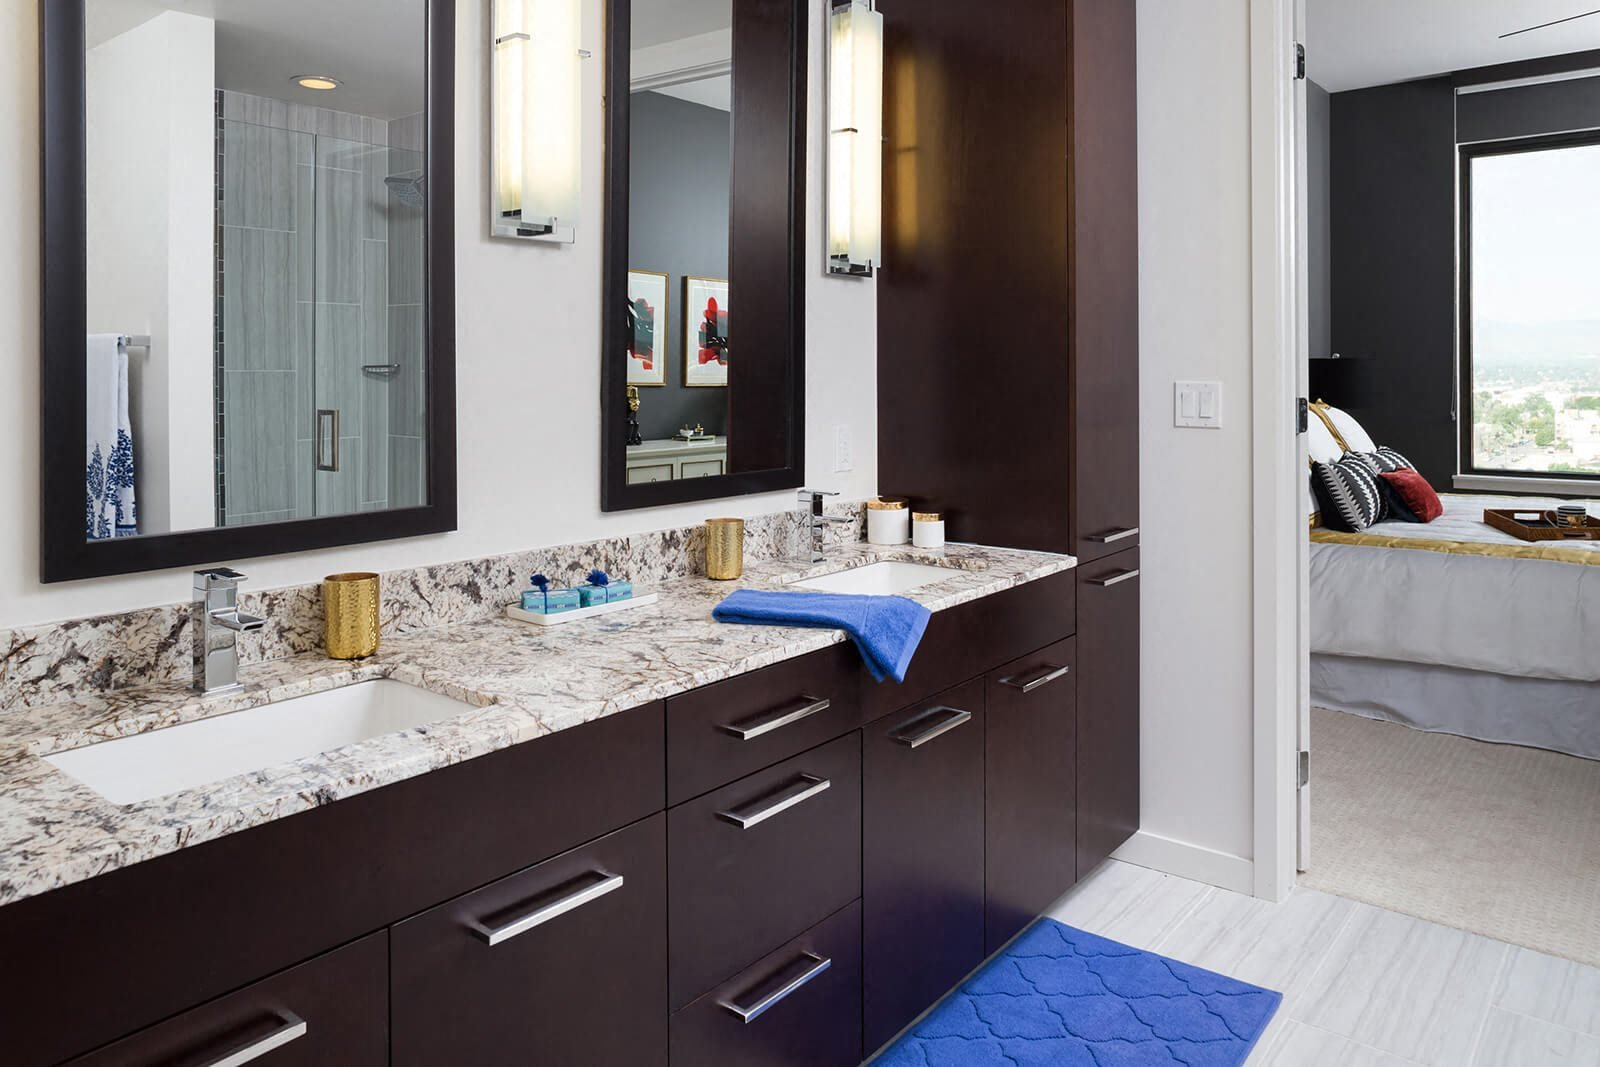 Dual Vanity With Framed Mirrors in Select Apartments at 1000 Speer by Windsor, 1000 Speer Blvd., CO